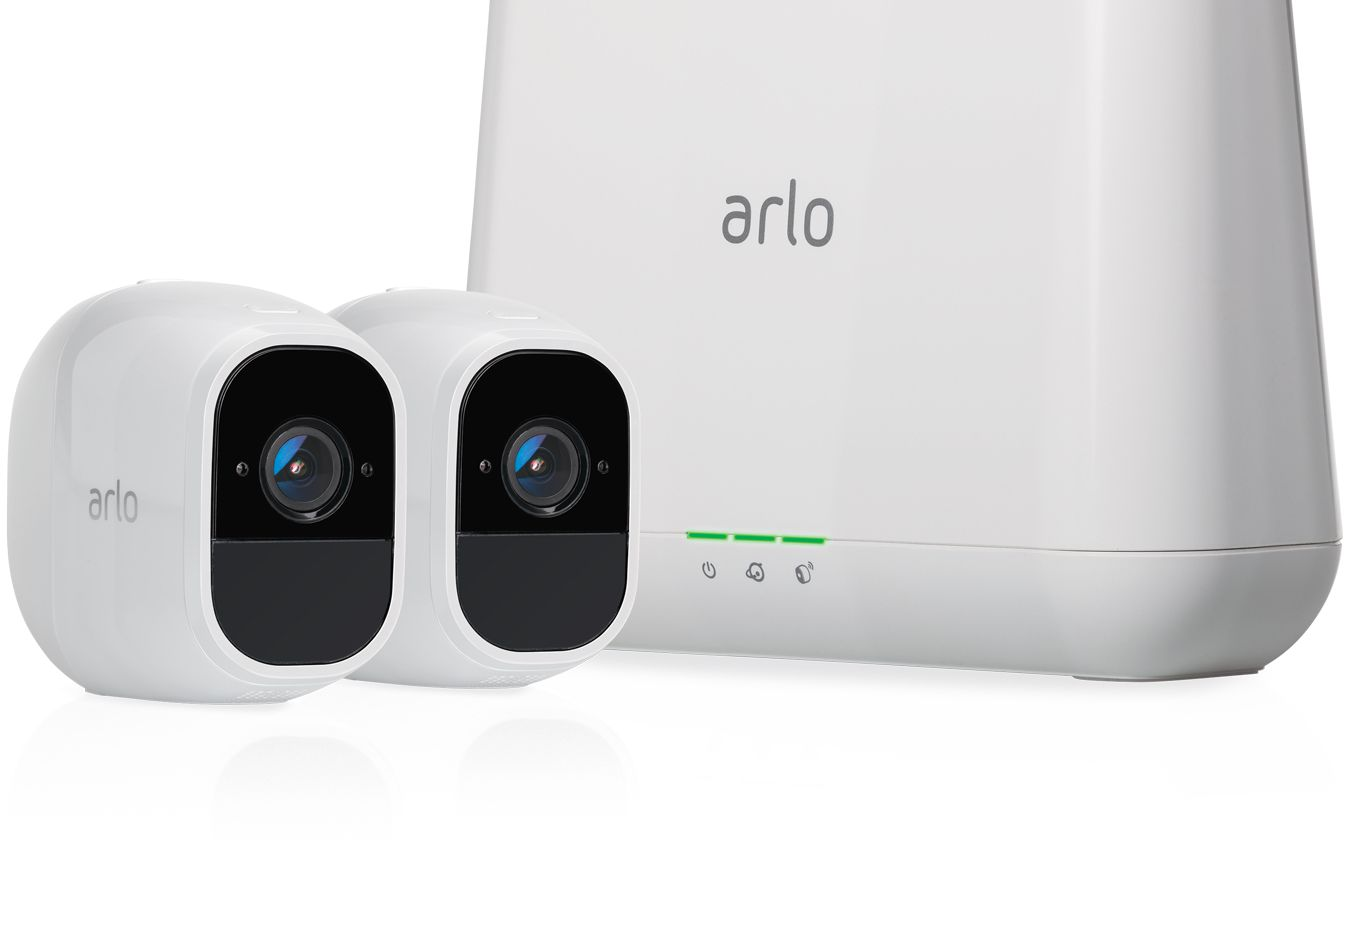 Netgear's Arlo Pro 2 cameras add power options, continuous